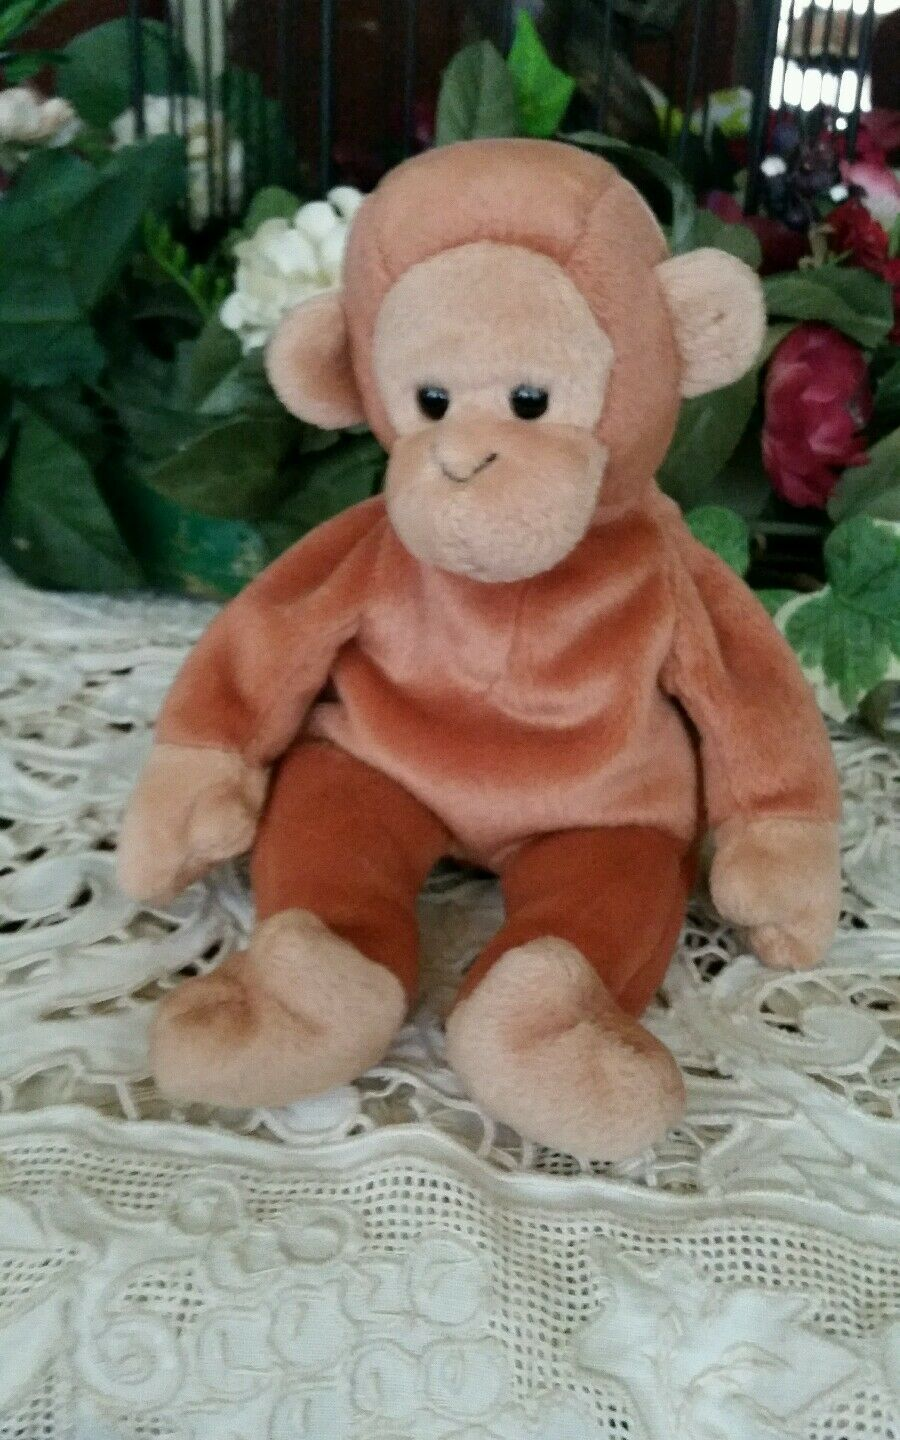 TY Beanie Babies Bongo Monkey 1995 Stuffed Animal Plush 8  retired collectible